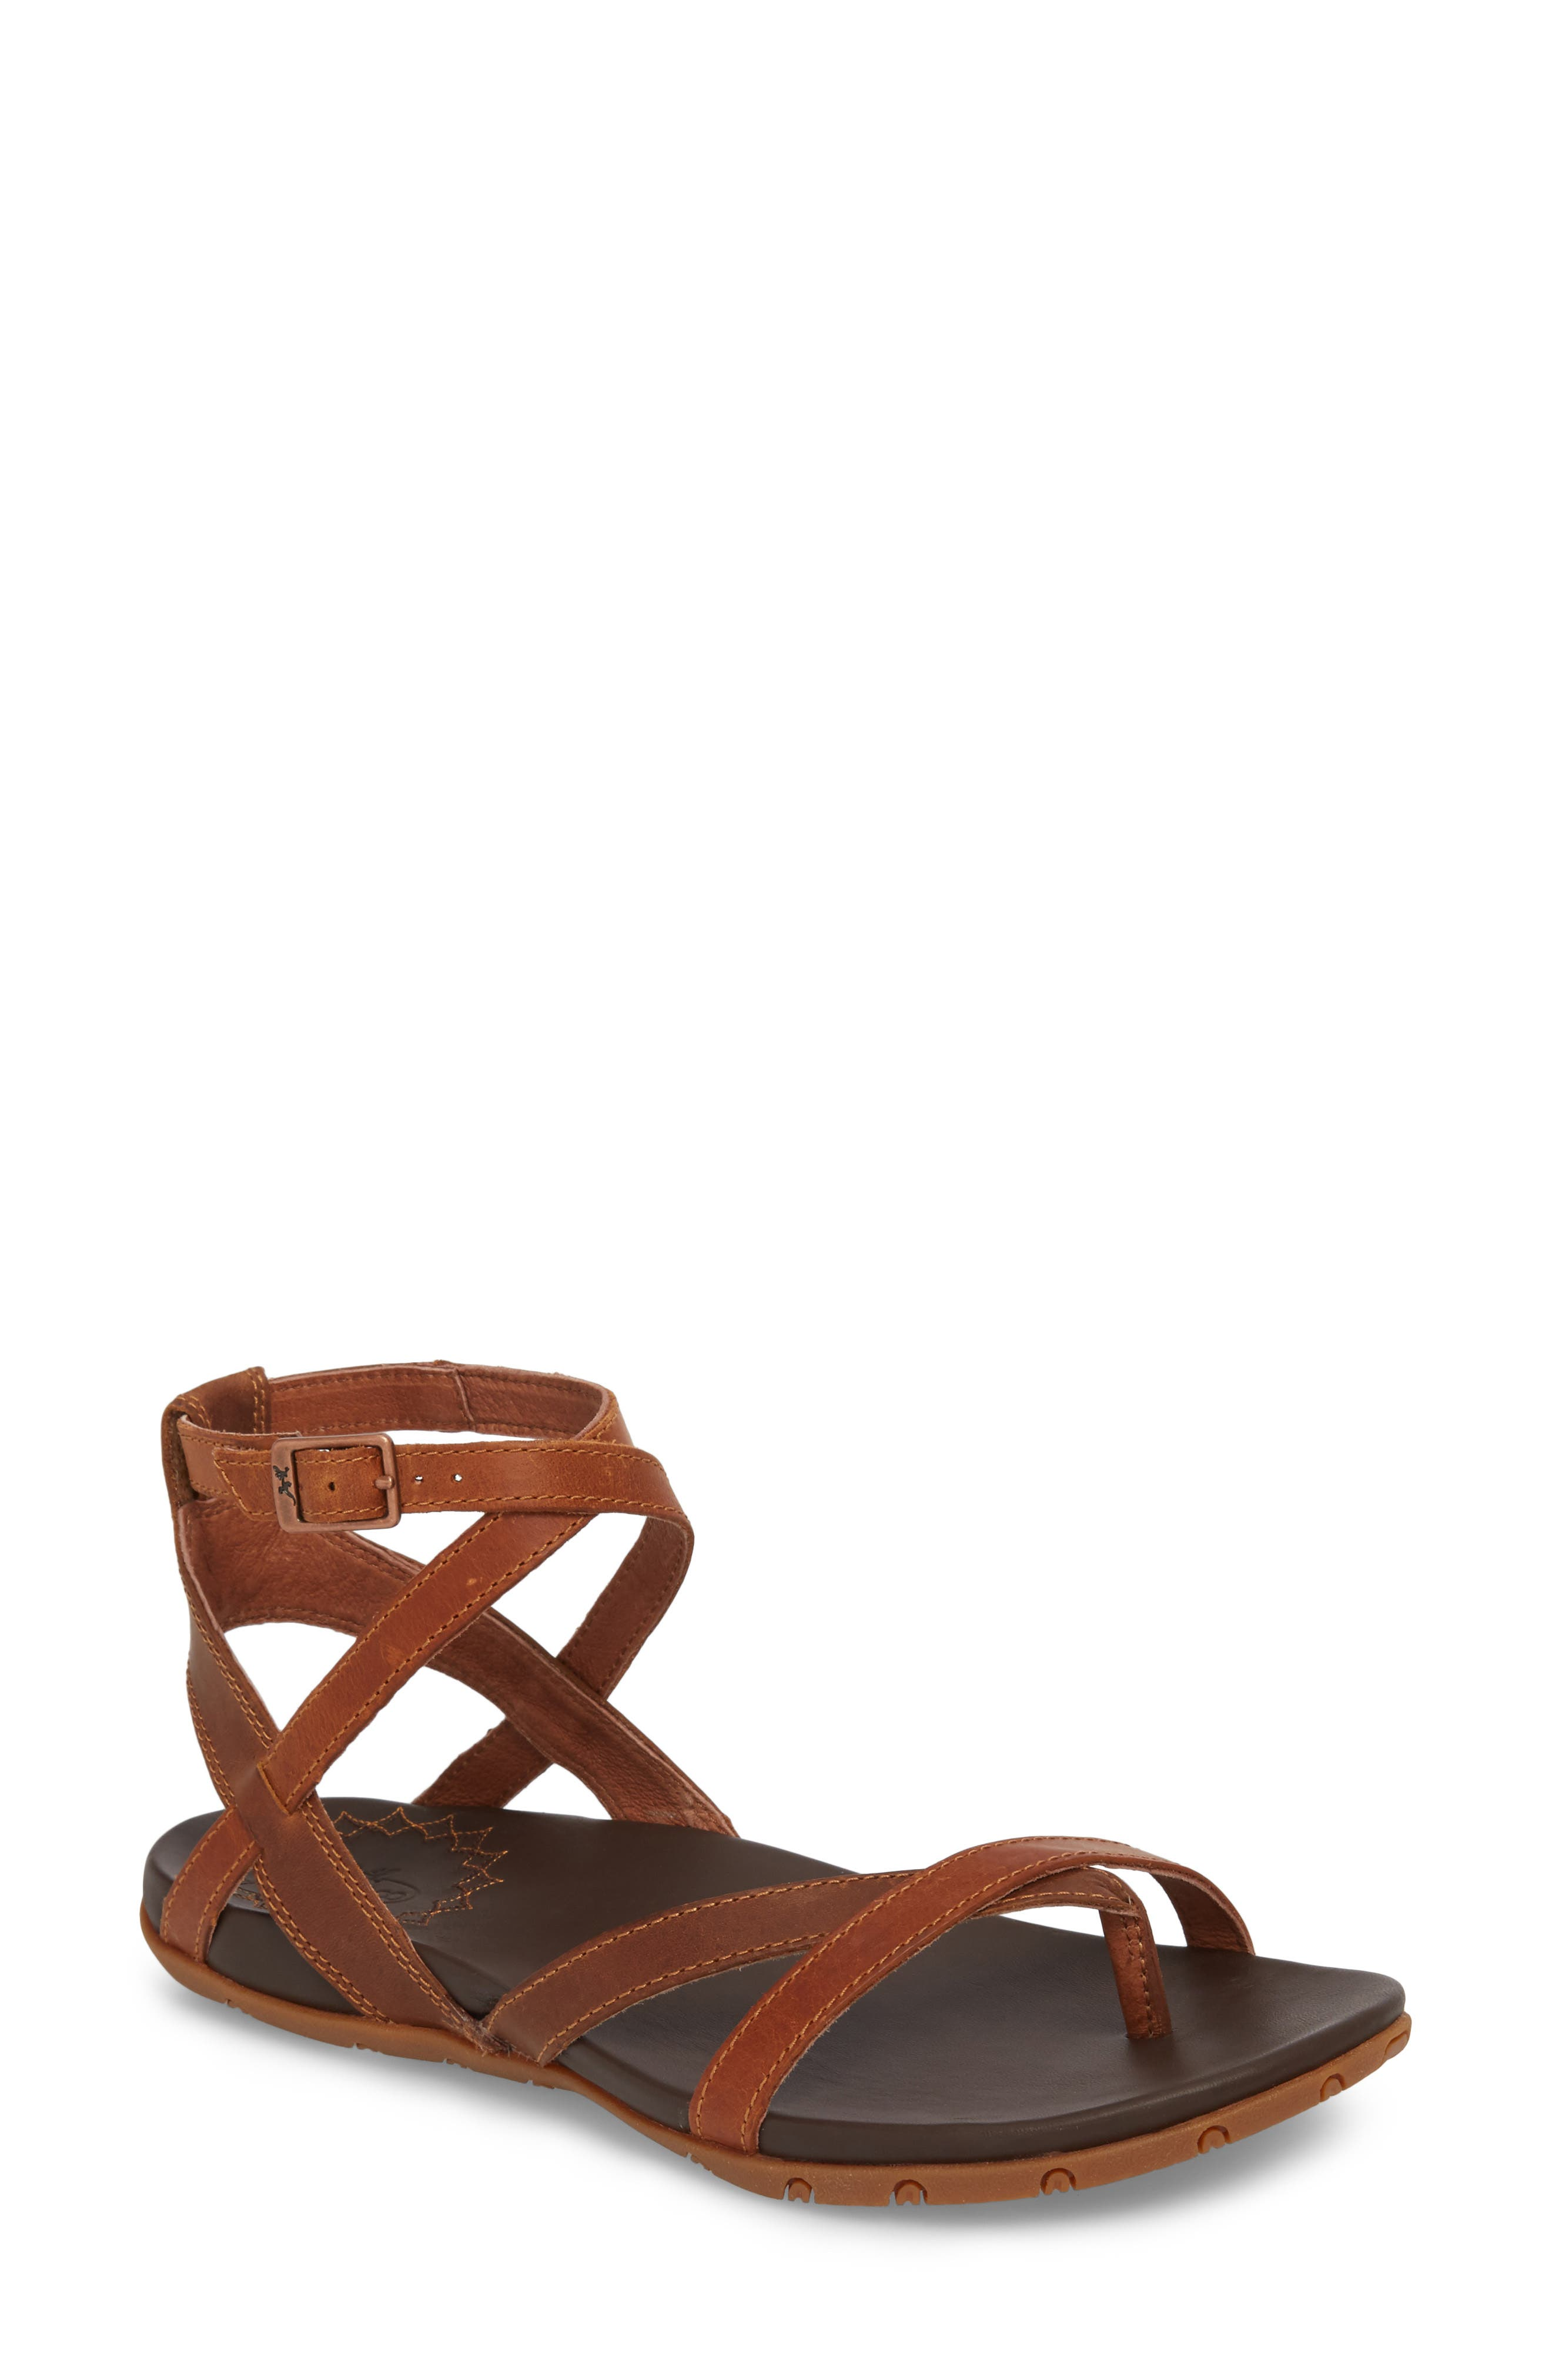 CHACO,                             Juniper Sandal,                             Main thumbnail 1, color,                             RUST LEATHER